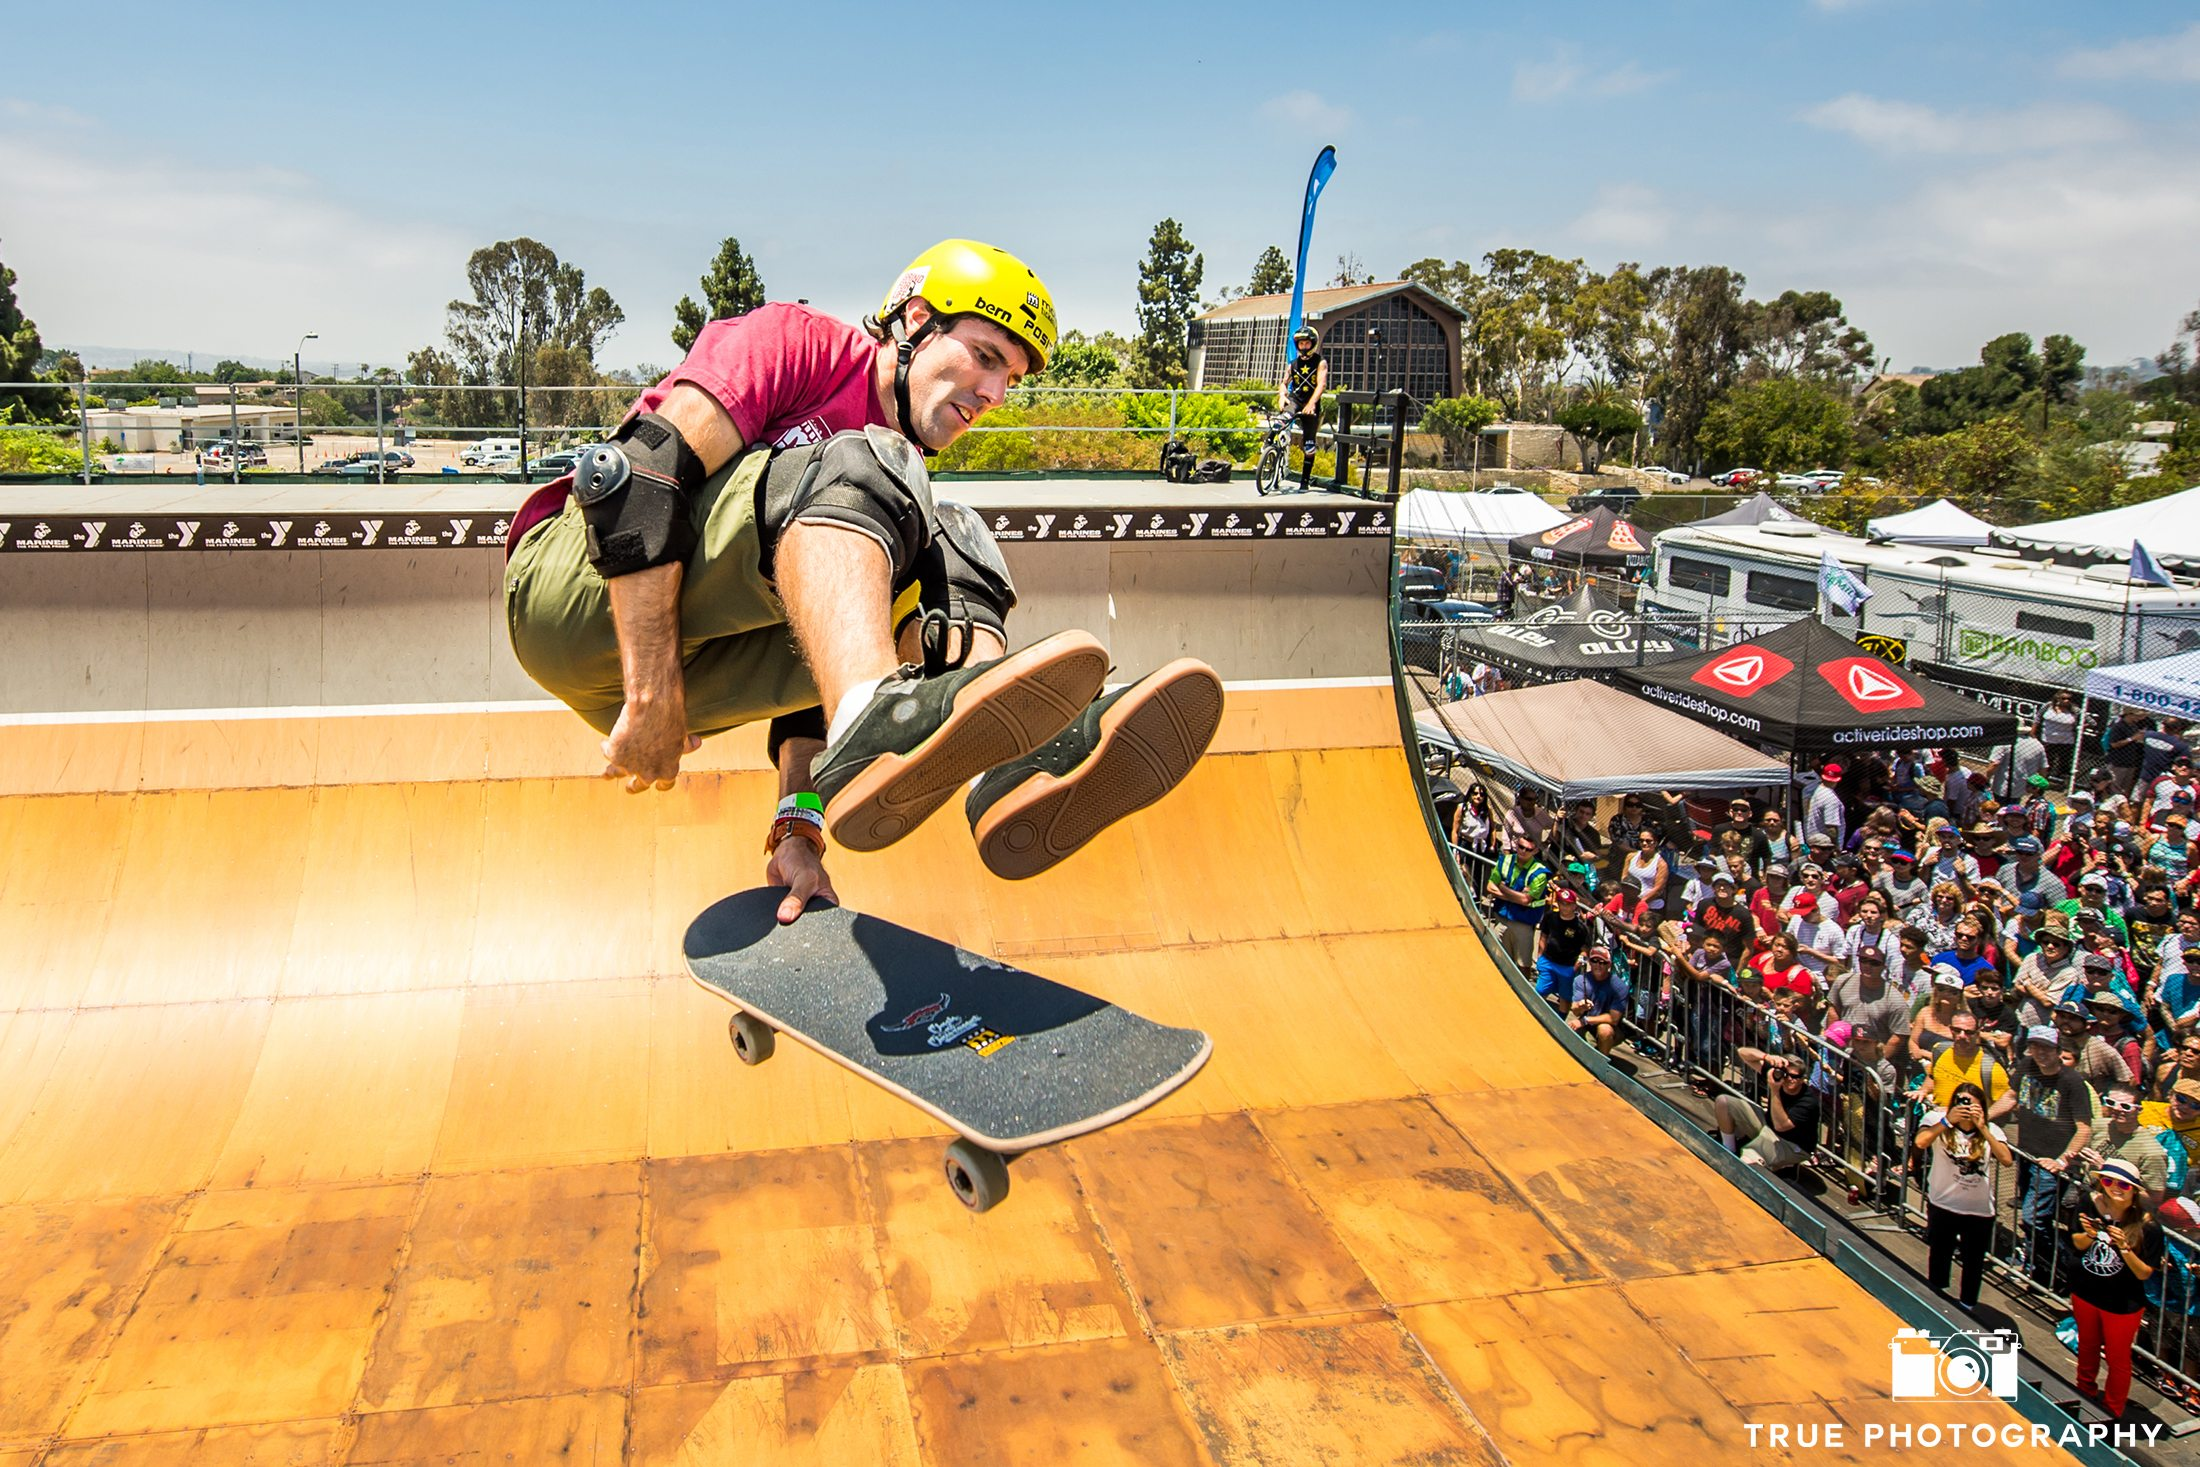 Skateboarding Andy Macdonald Half Pipe San Diego Clash at Clairemont